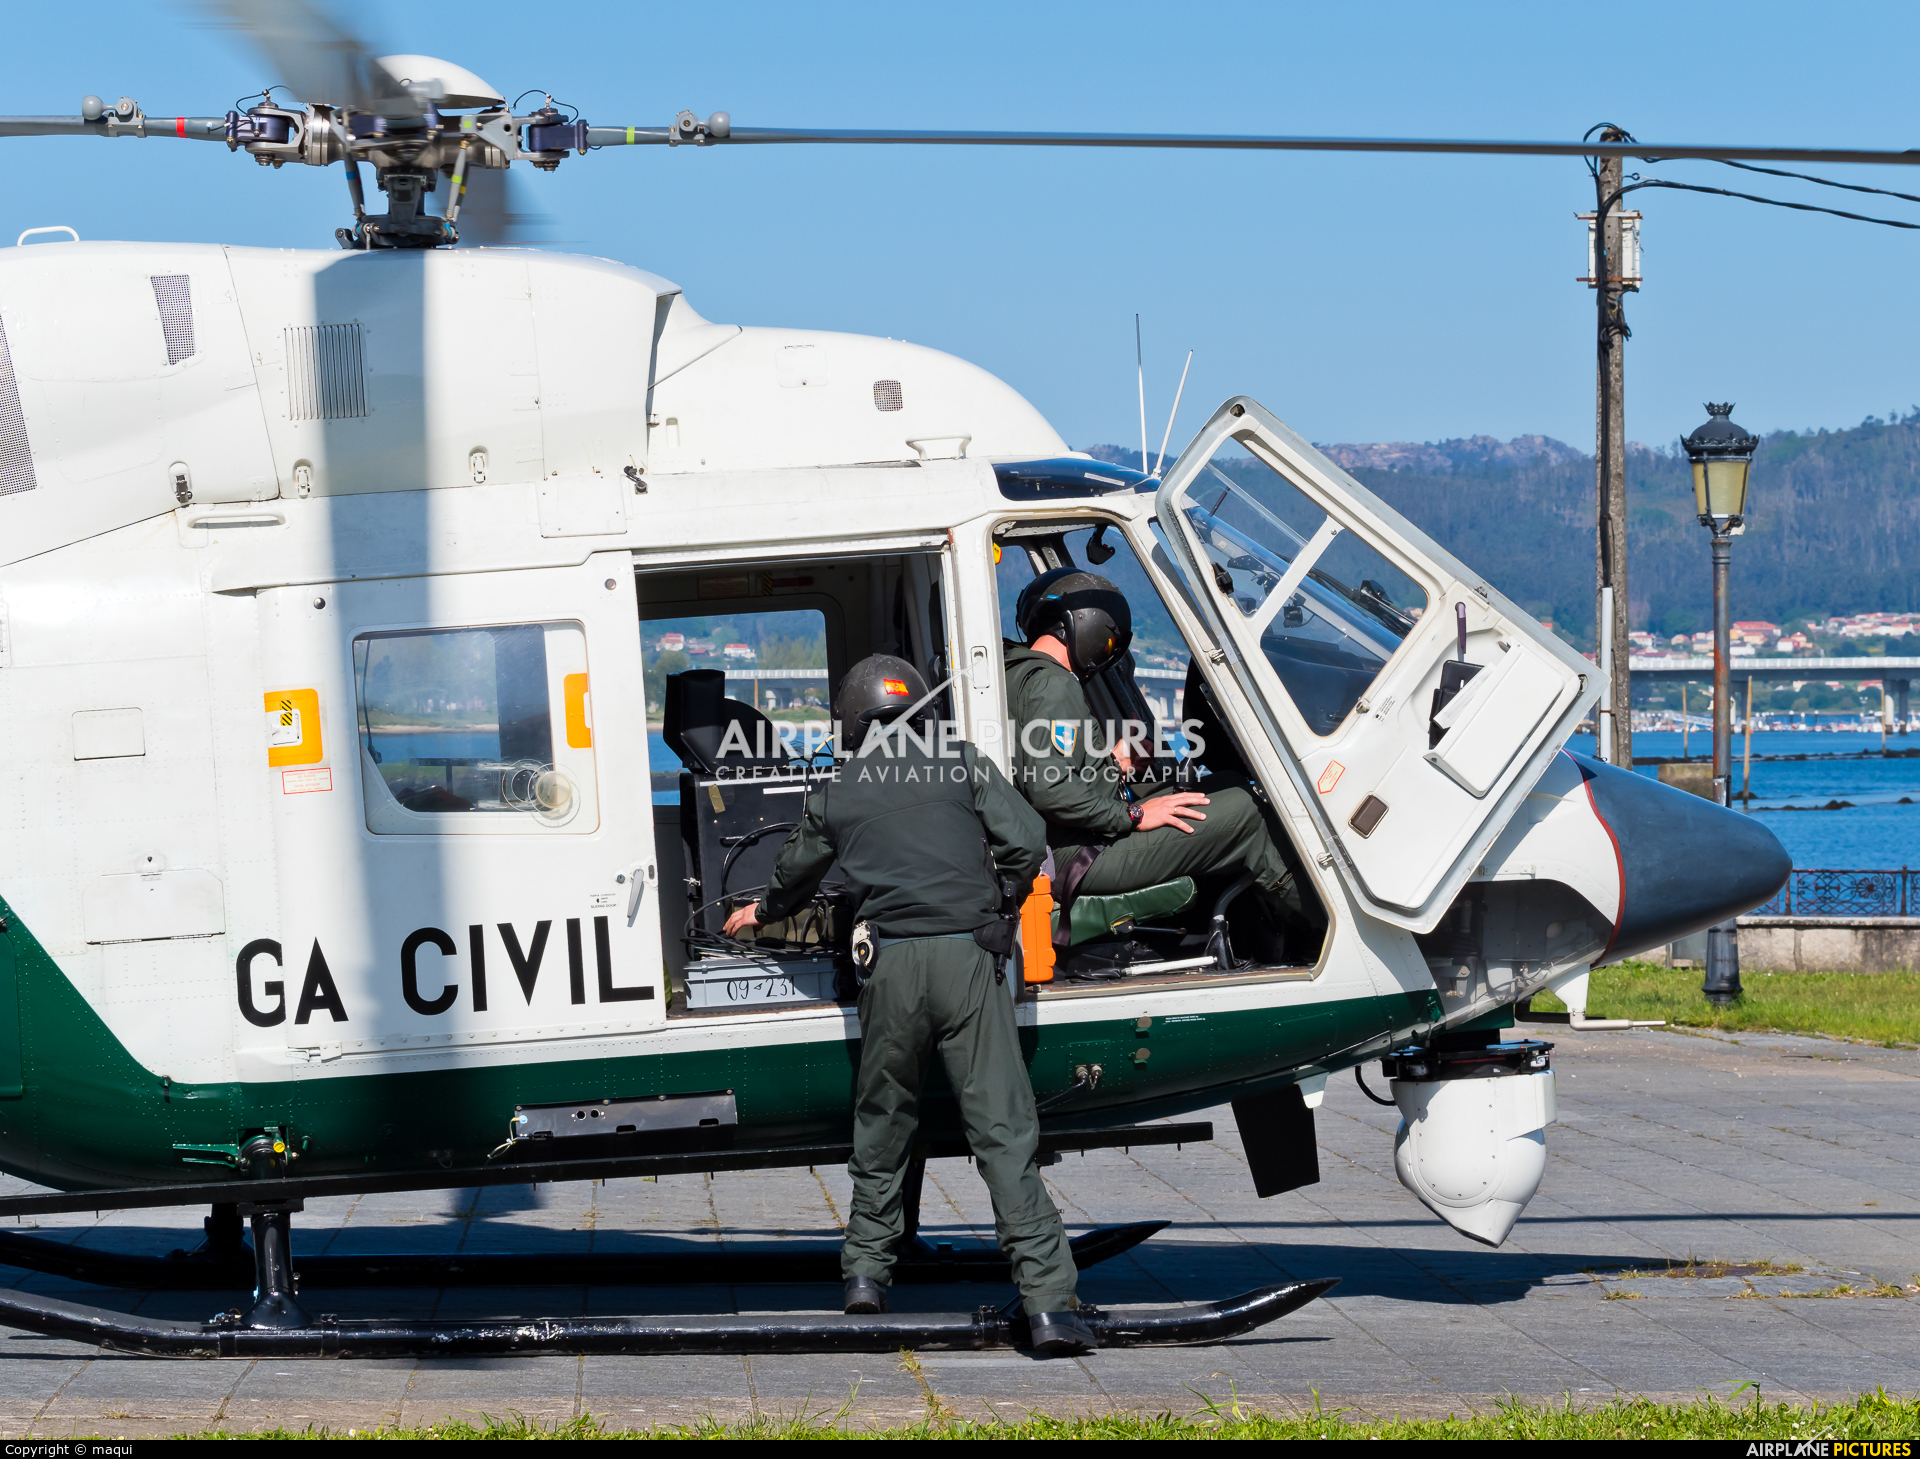 Spain - Guardia Civil HU.22-04 aircraft at La Coruña - Off Airport